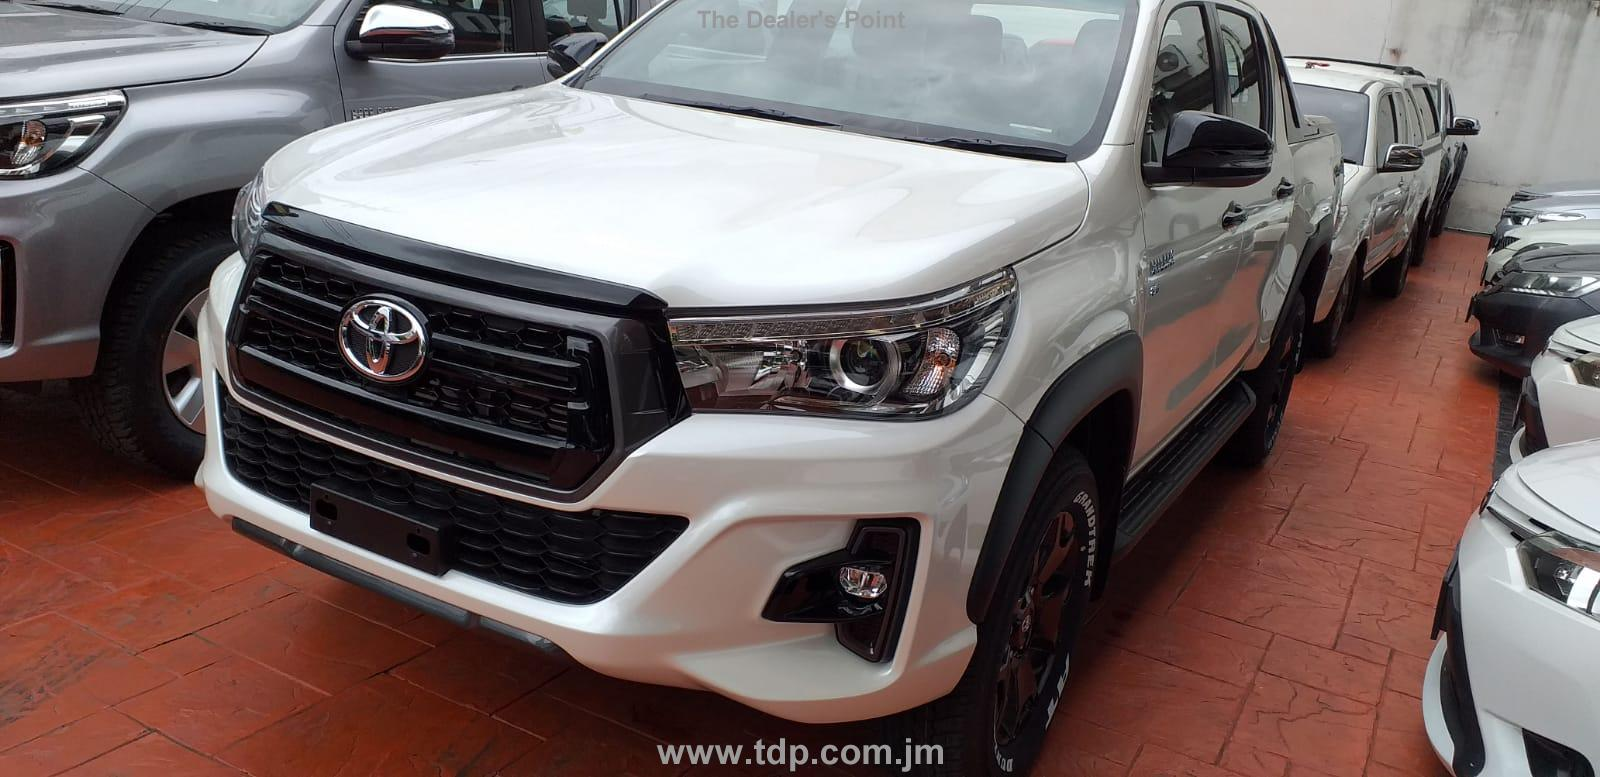 TOYOTA HILUX PICK UP 2019 Image 3